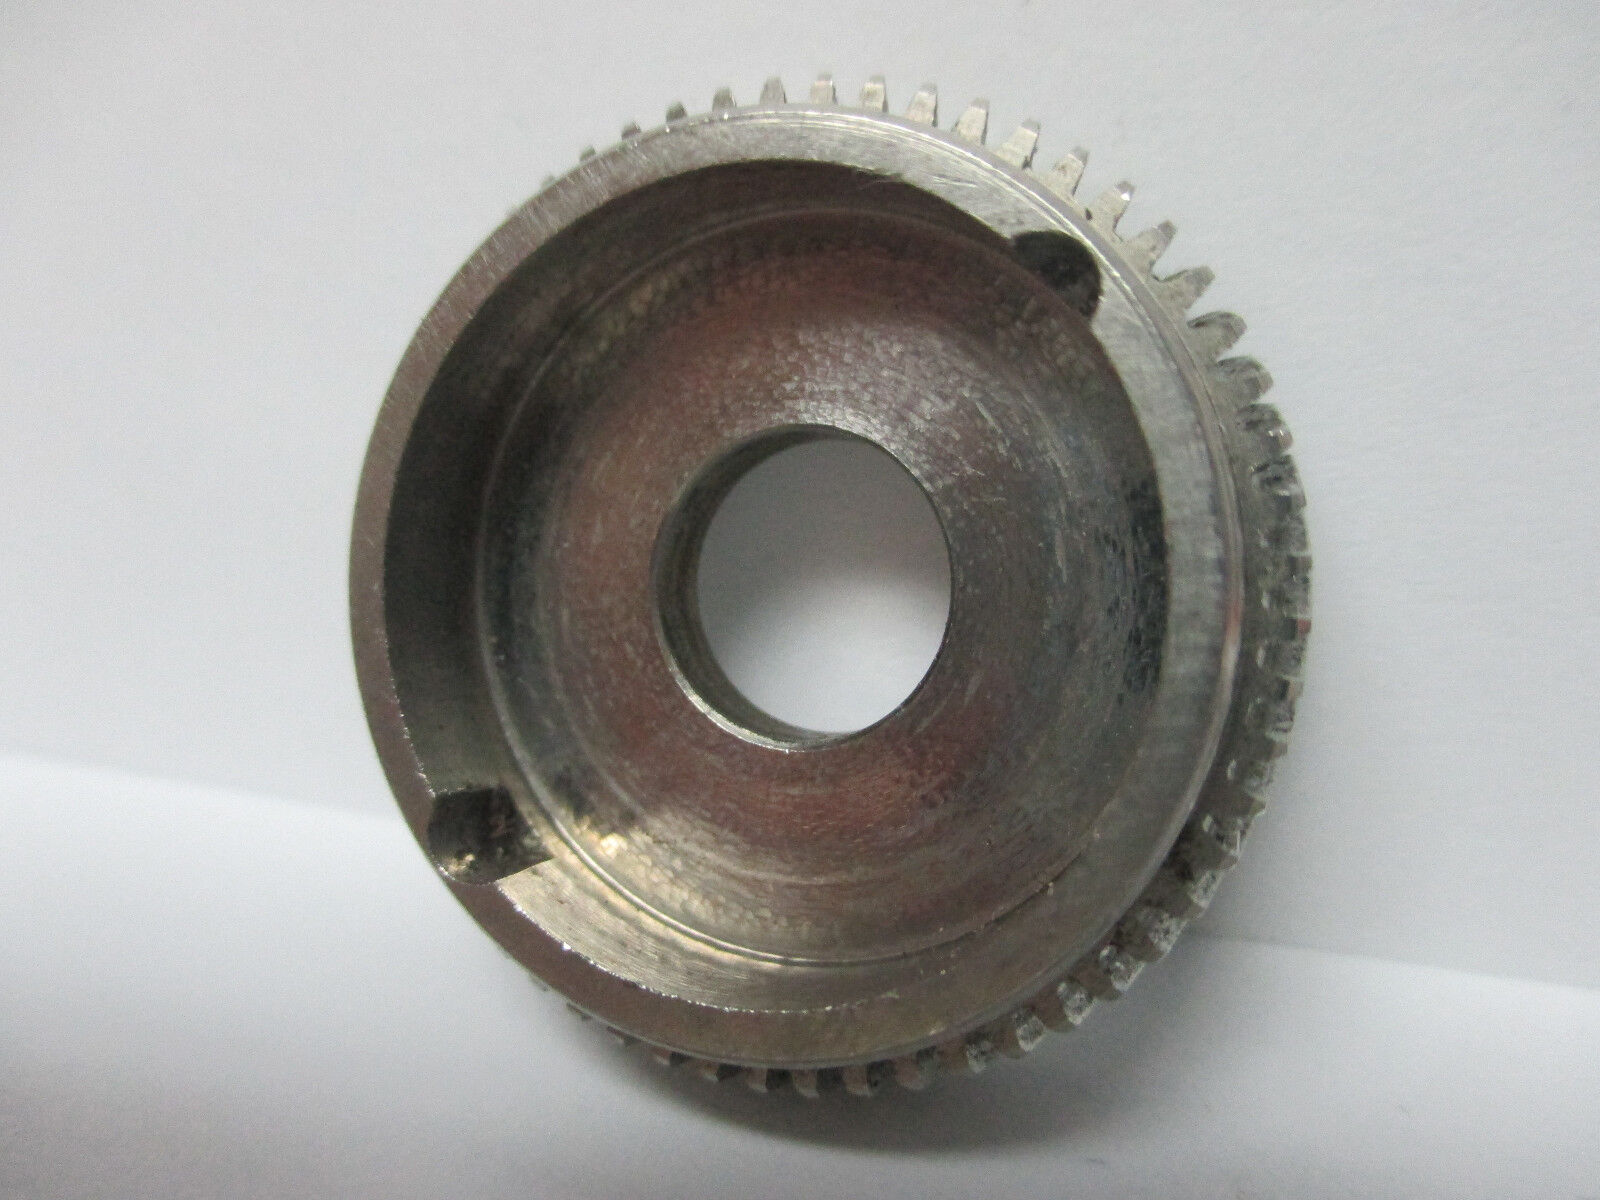 NEW NEWELL CONVENTIONAL REEL  PART - 322 5 - Main Gear  high quaity